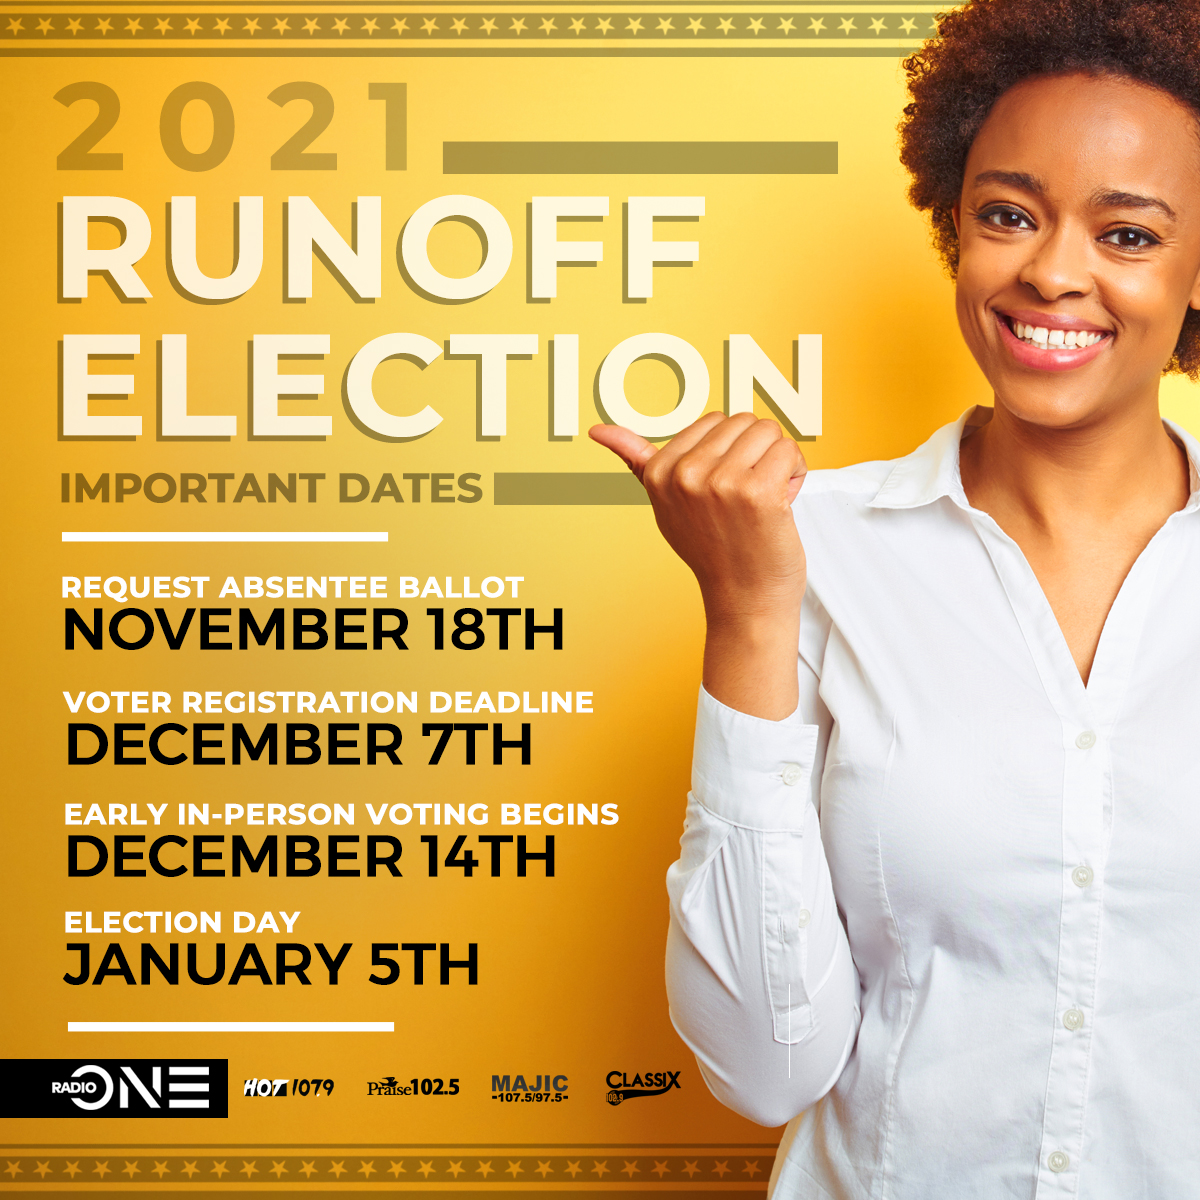 Georgia Runoff election dates 2020